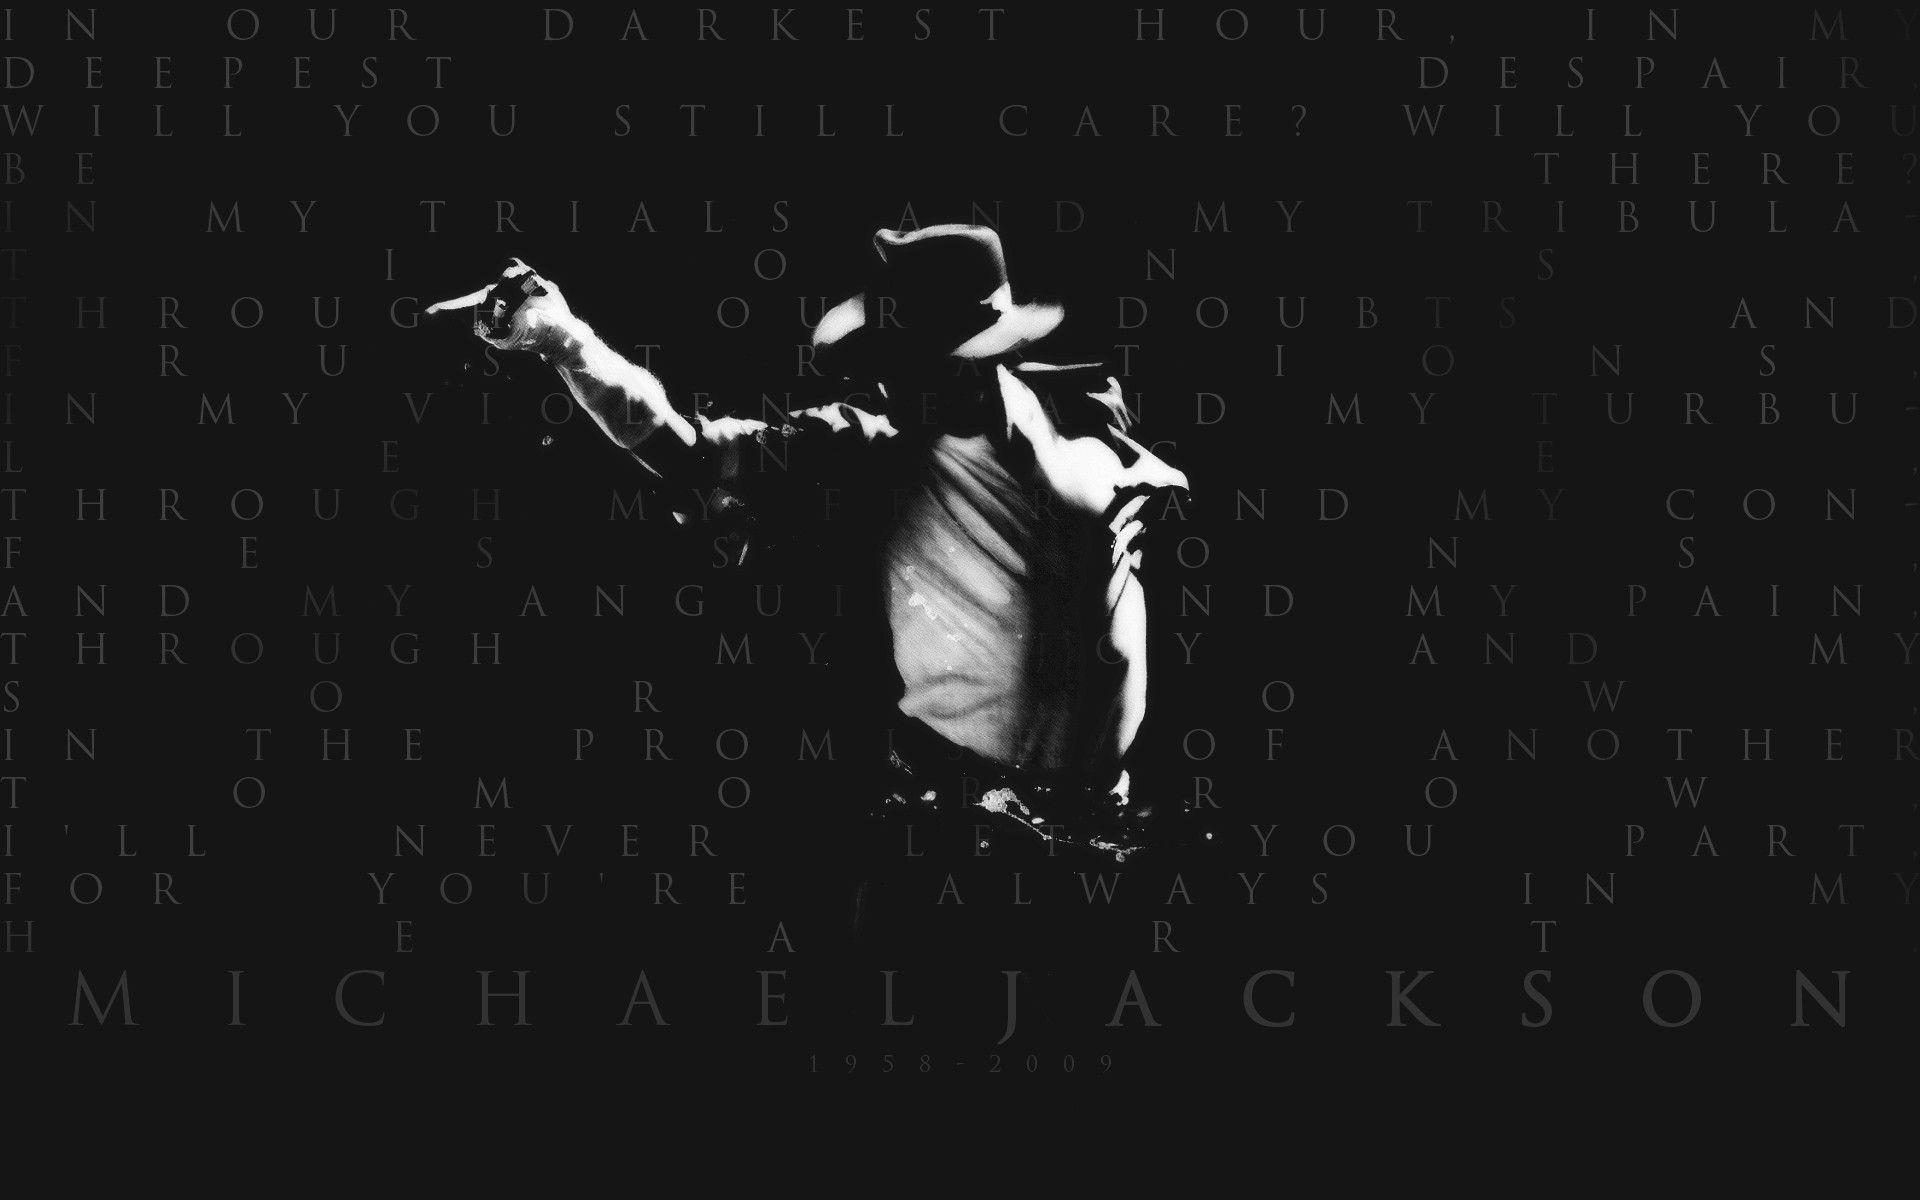 Michael Jackson Wallpaper Quotes 5224 Full HD Wallpaper Desktop ...